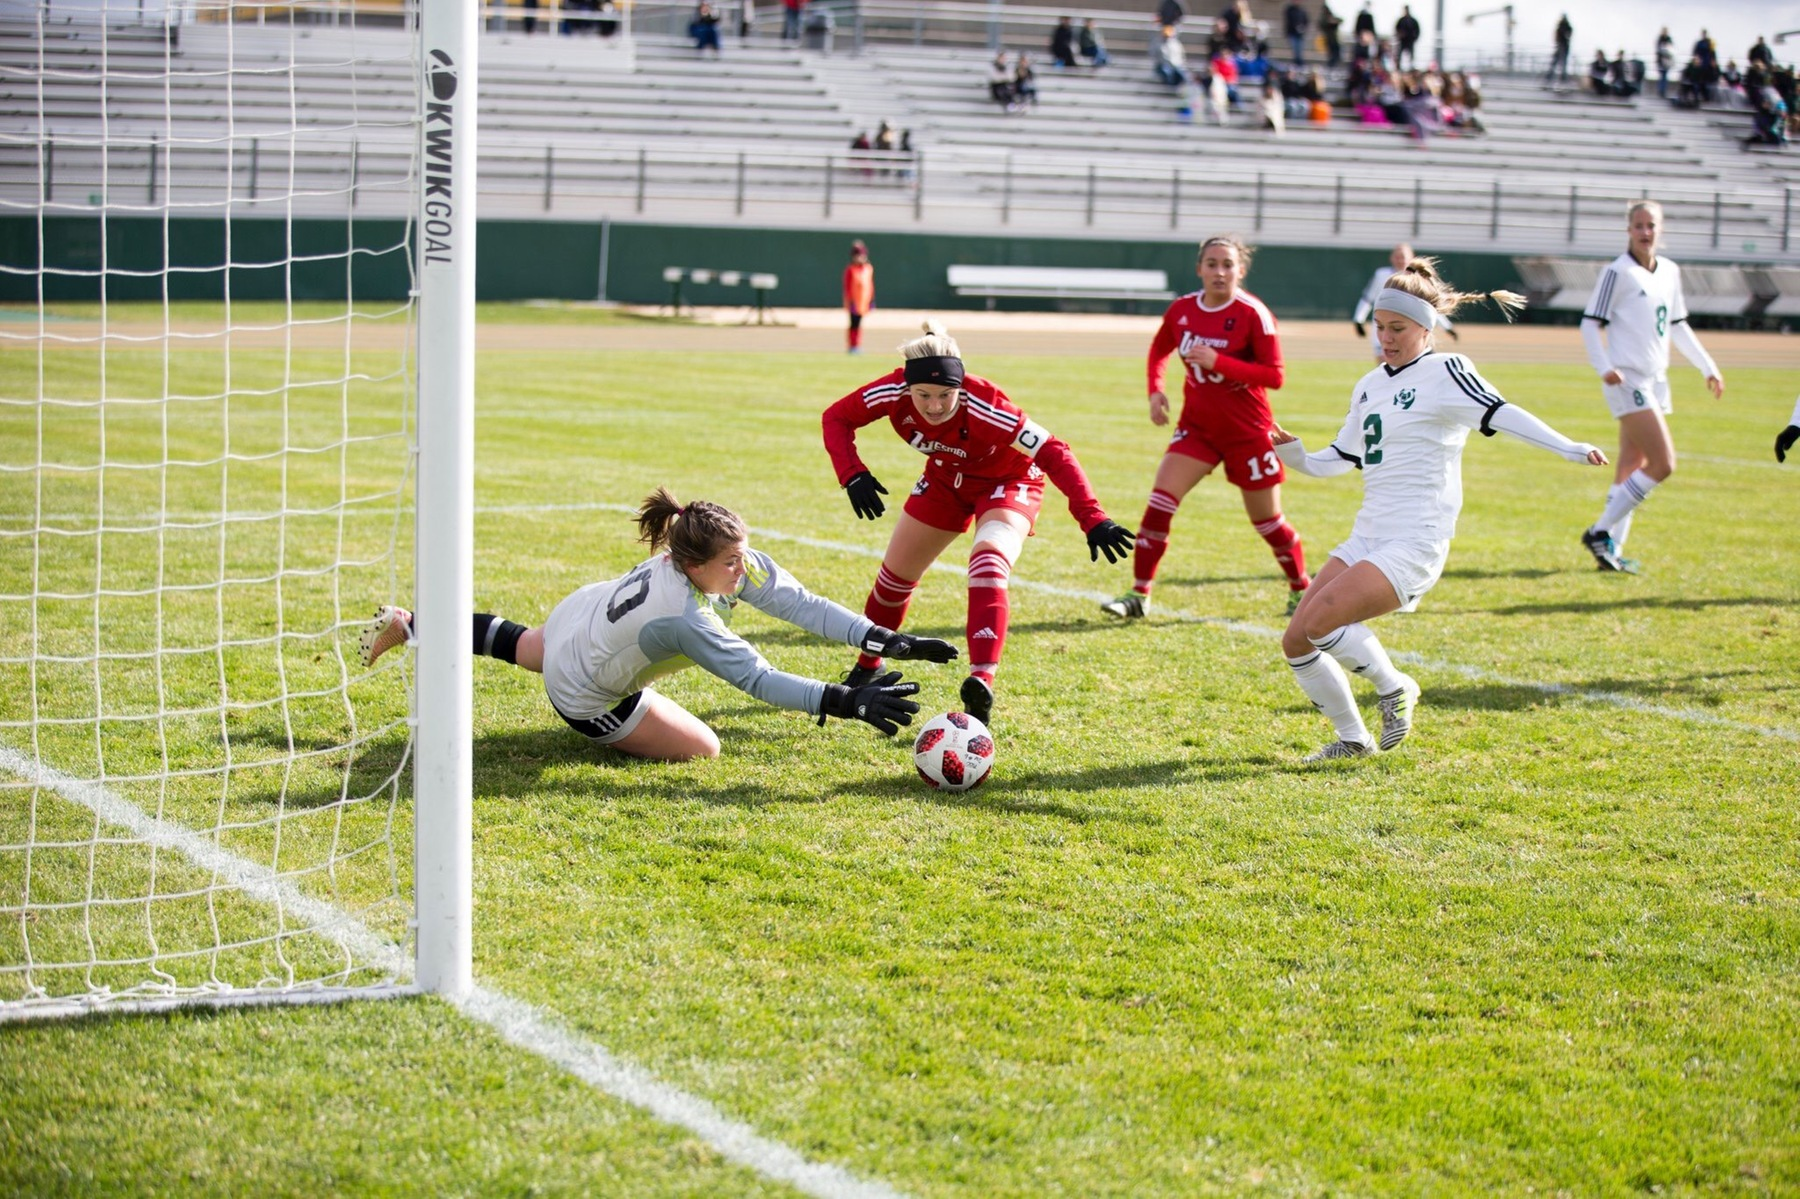 Wesmen goalie Madyson Fordyce makes one of her nine saves while defender Amy Clayton (centre) looks on Saturday in Edmonton. (Alberta Athletics photo)